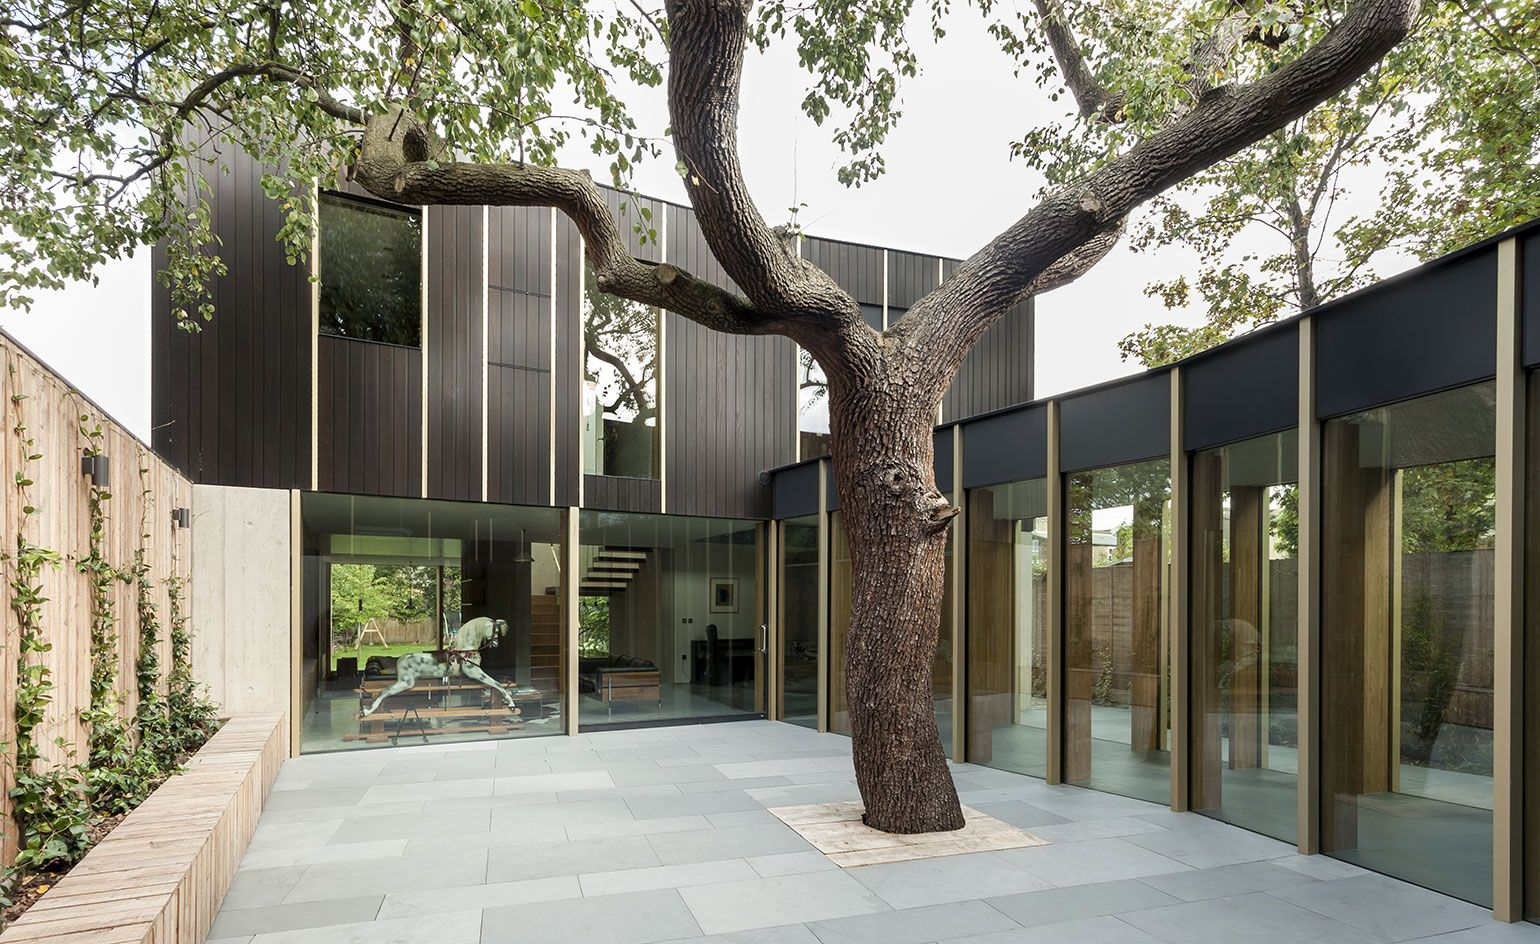 tree house plans for one tree. Pear Tree House By Edgley Design Sits On The Site Of A Victorian Orchard | Architecture Wallpaper* Magazine Plans For One